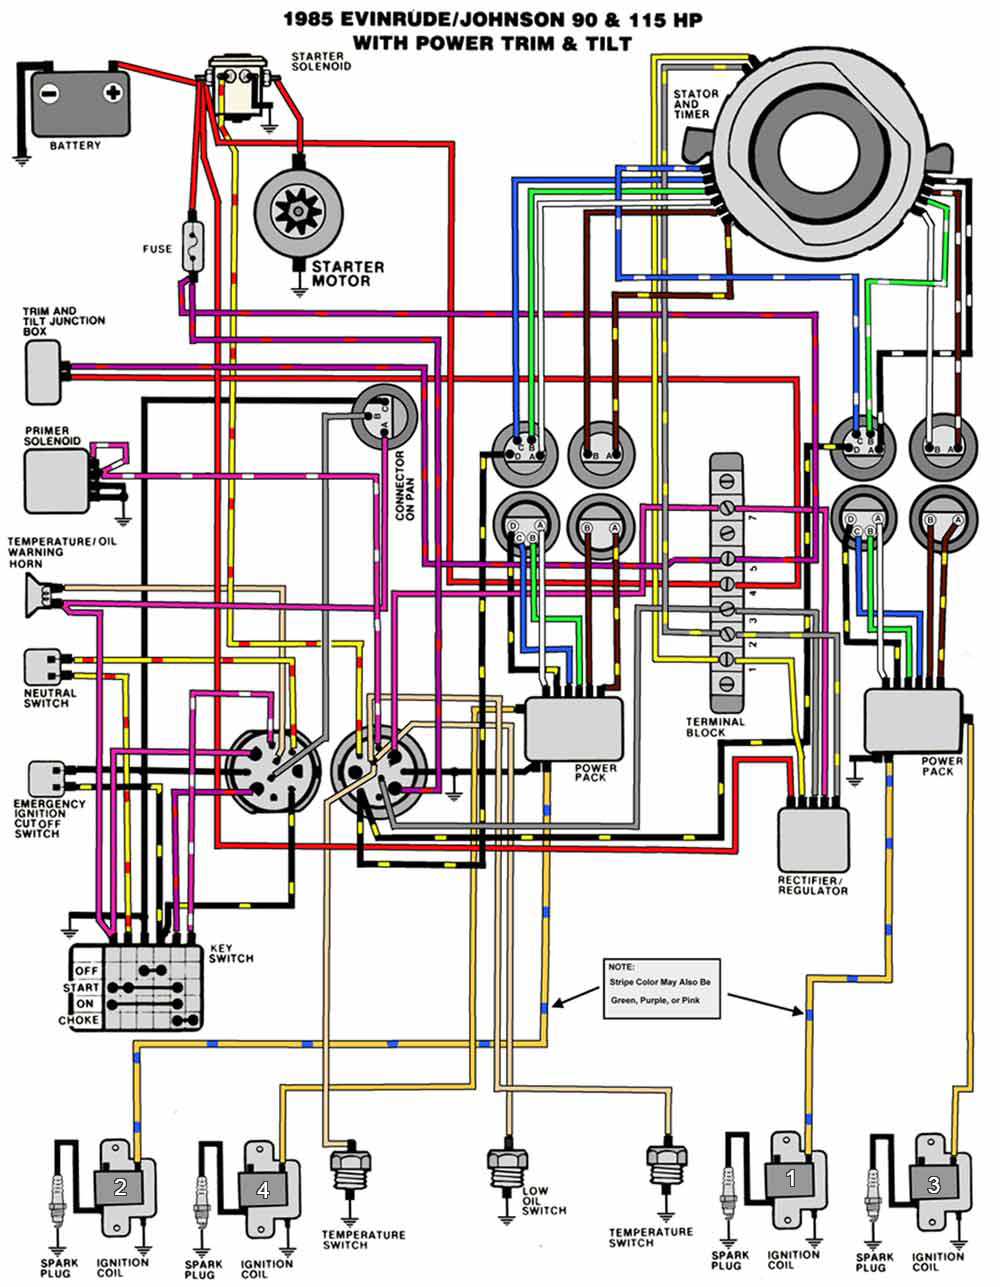 1991 Yamaha 115 Wiring Diagram Schematic Data Schema Marine Gauge Johnson Harness Simple Outboard Parts